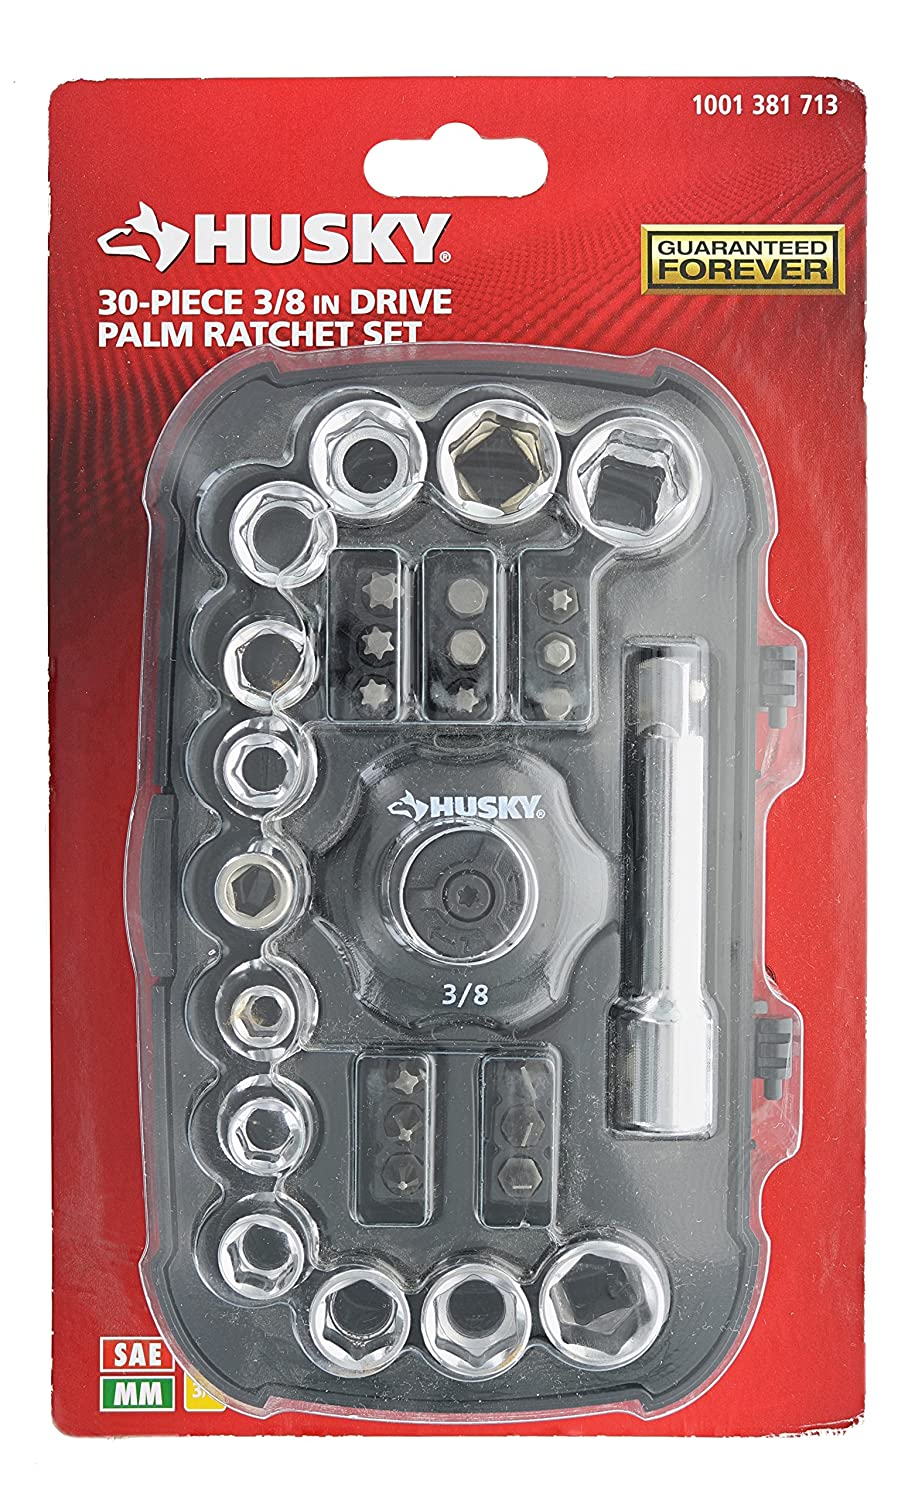 Husky HPR30PC 30-Piece 3/8 Inch Drive Palm Ratchet Set with SAE and Metric Units